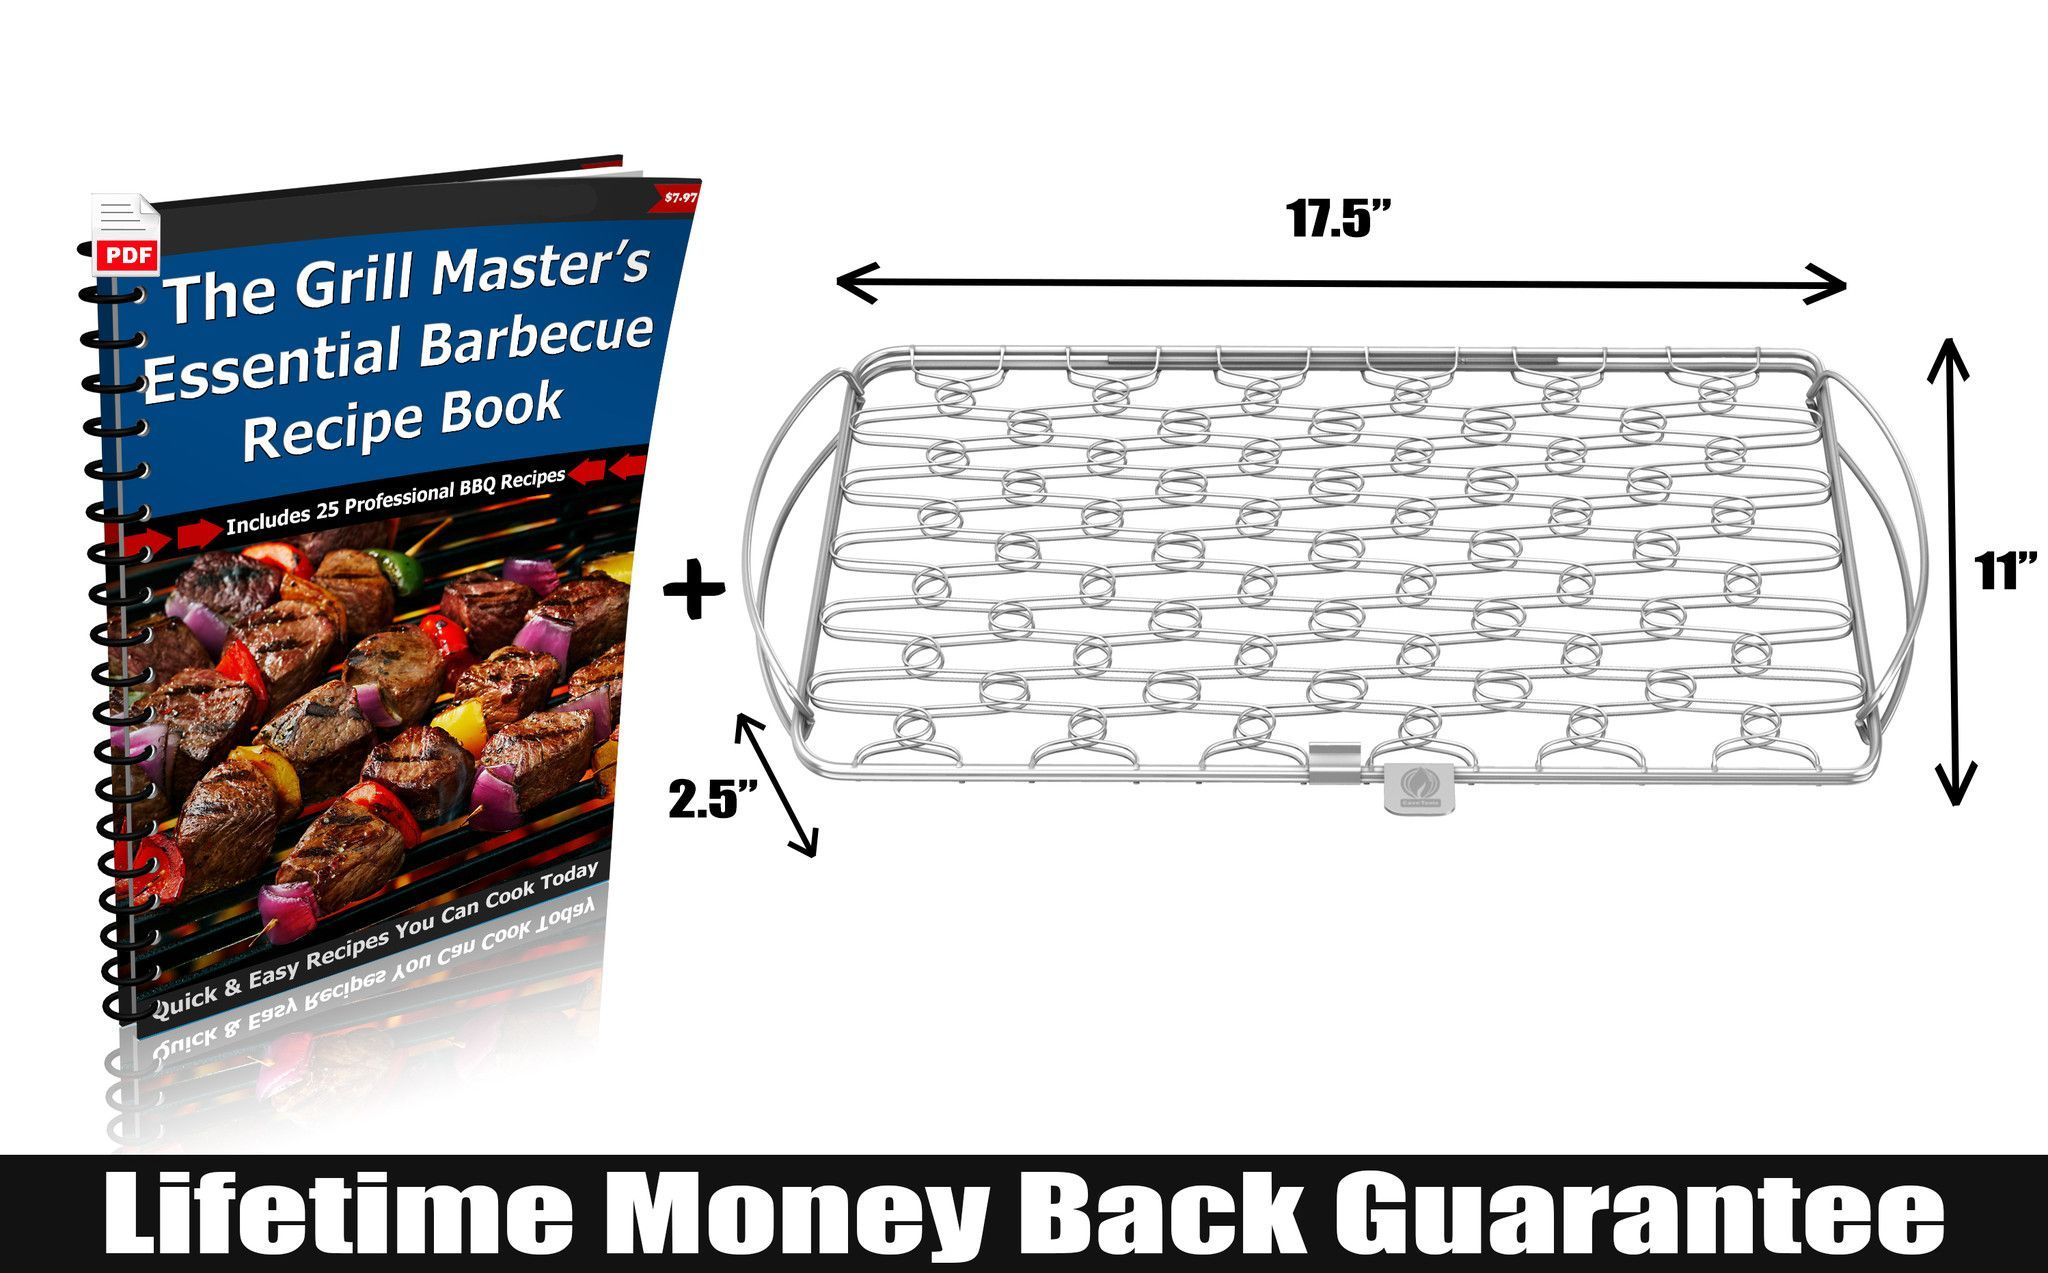 YOU CAN'T AFFORD TO RUIN A GOOD FISH MEAL - With fresh whole fish running upwards of $20/Lb these days the last thing you want is your fish falling apart or dro  Get the Cave Tools Large Fish Grill Basket here: http://snip.ly/5hly1